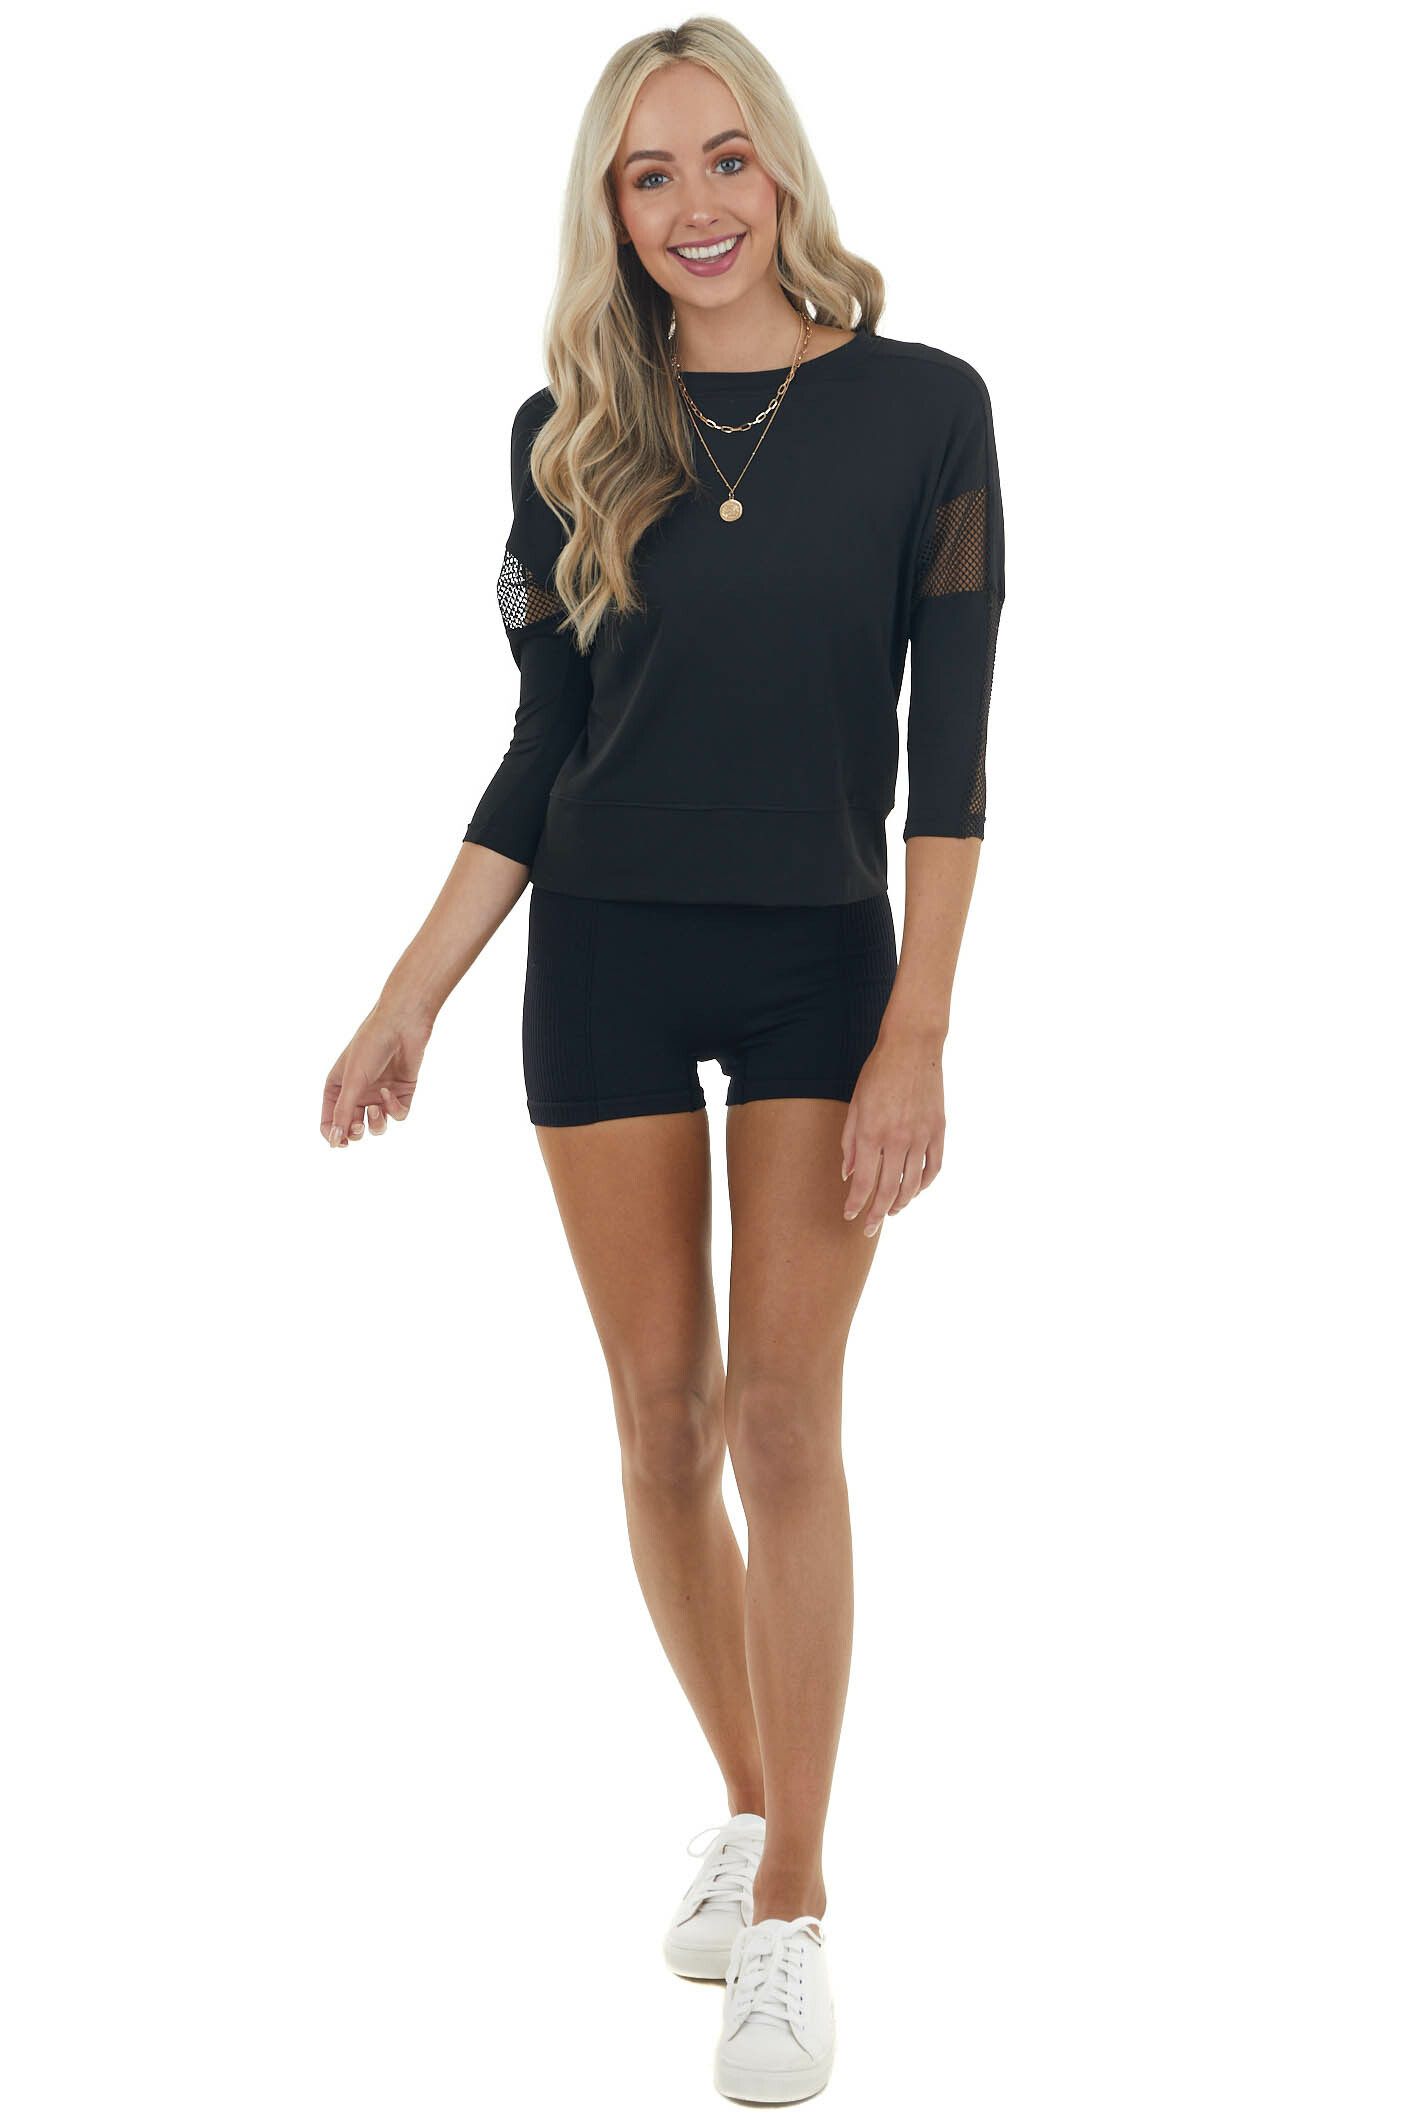 Black Stretchy Knit Top with Mesh Details and Back Cut Out